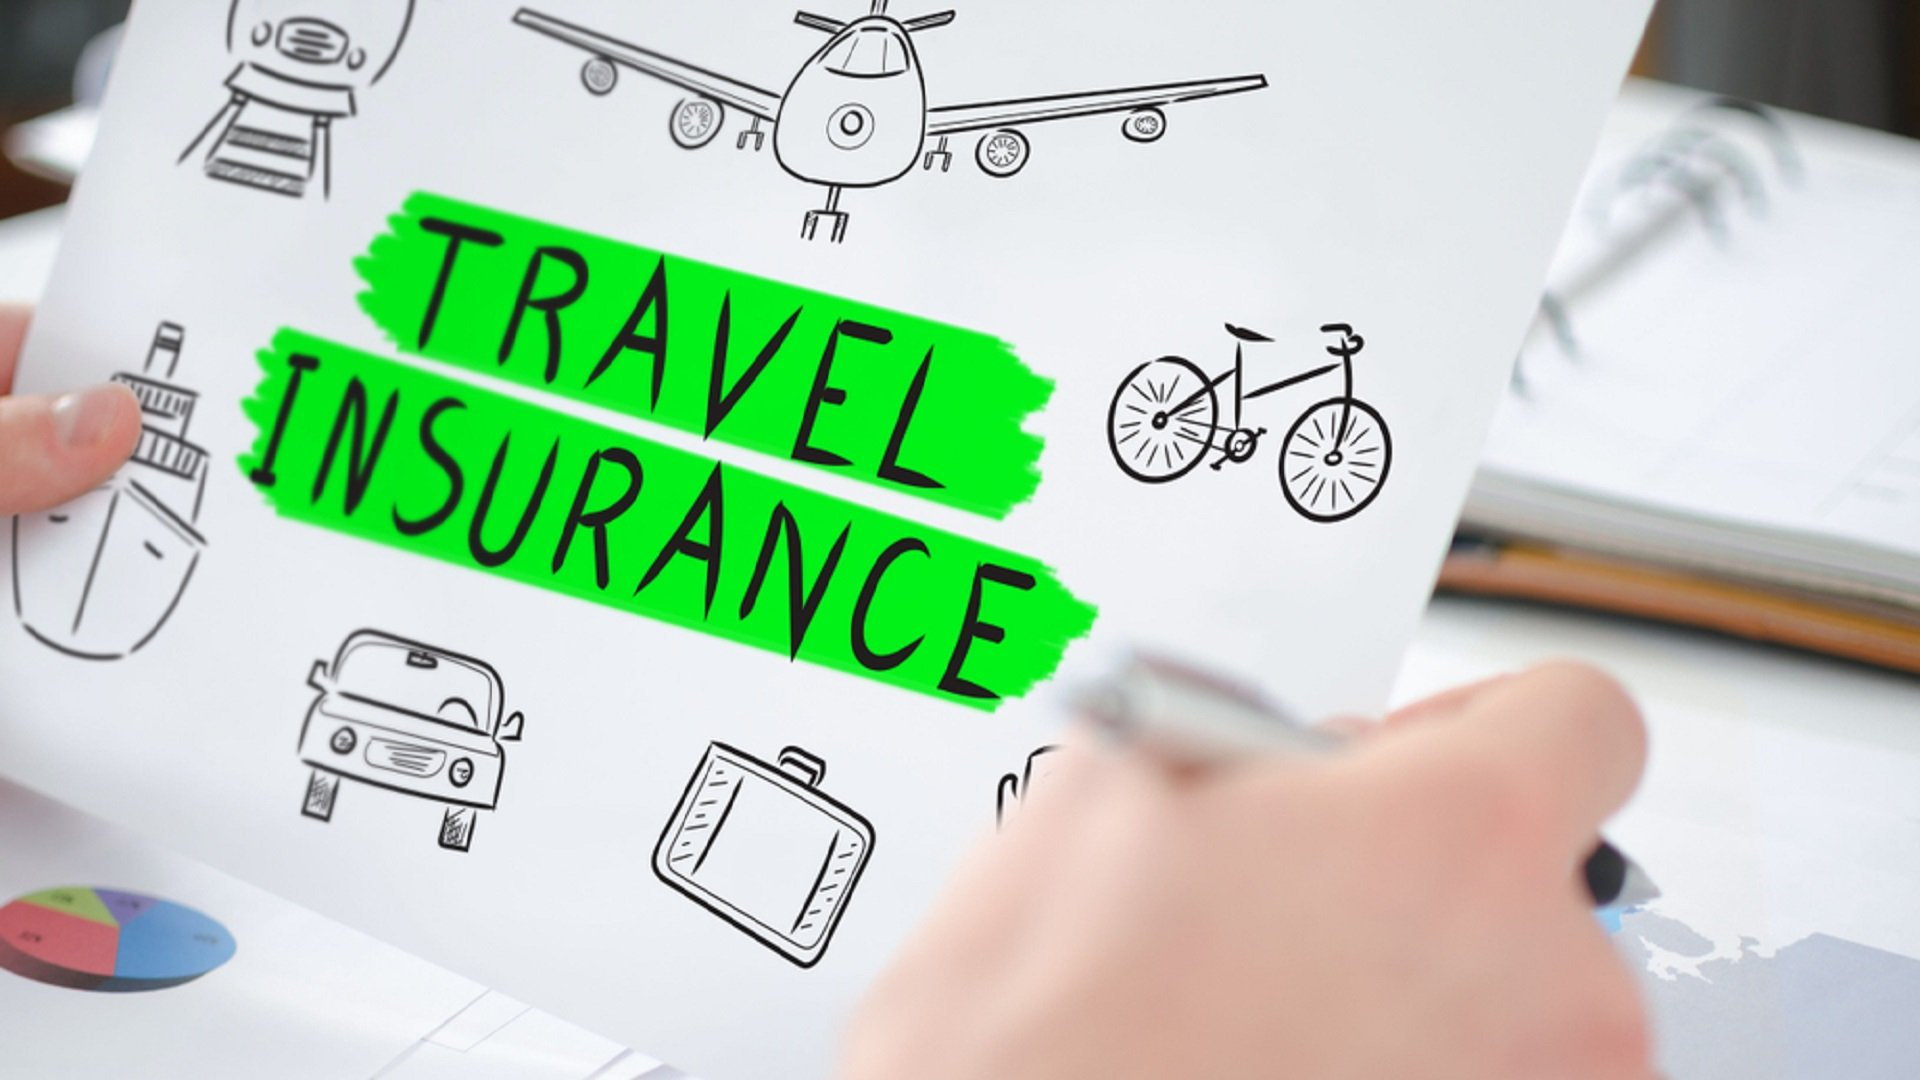 Everything You Need To Know About Travel Insurance Zrn Tripstar accident accident Bali Bali best travel insurance cheapest travel insurance